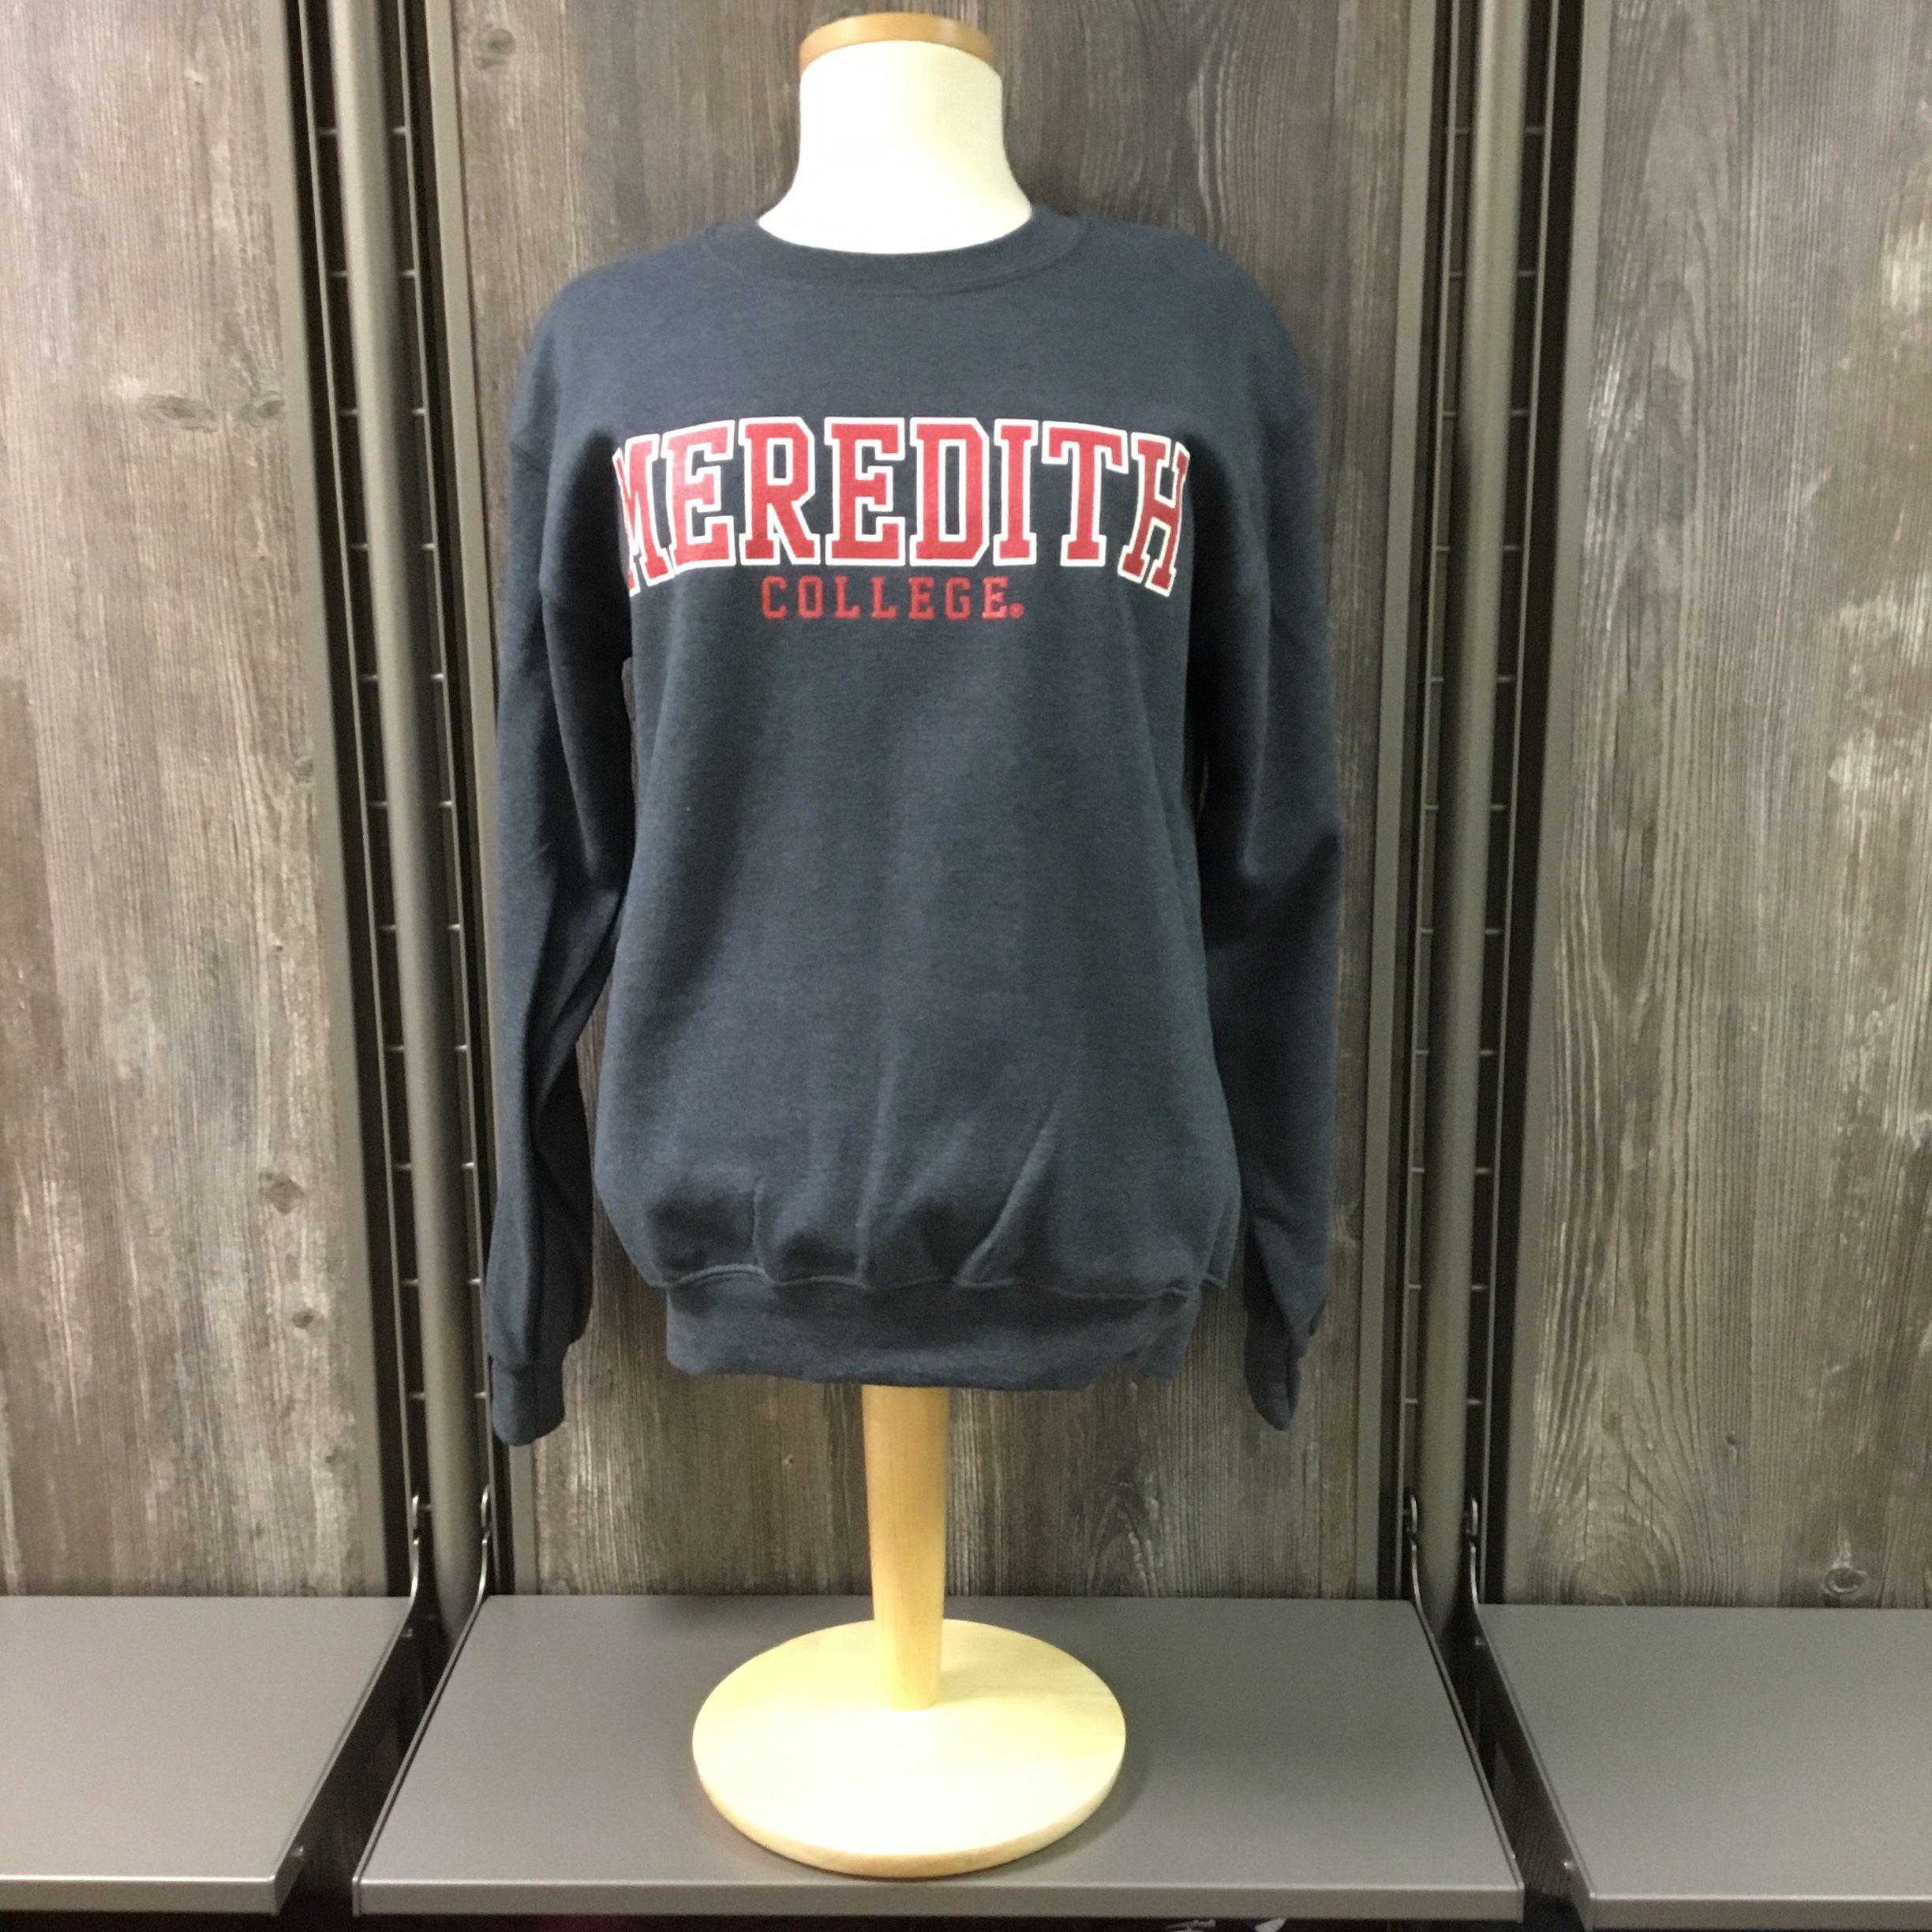 Image for the Crew sweatshirt Meredith College FC MV Sport product